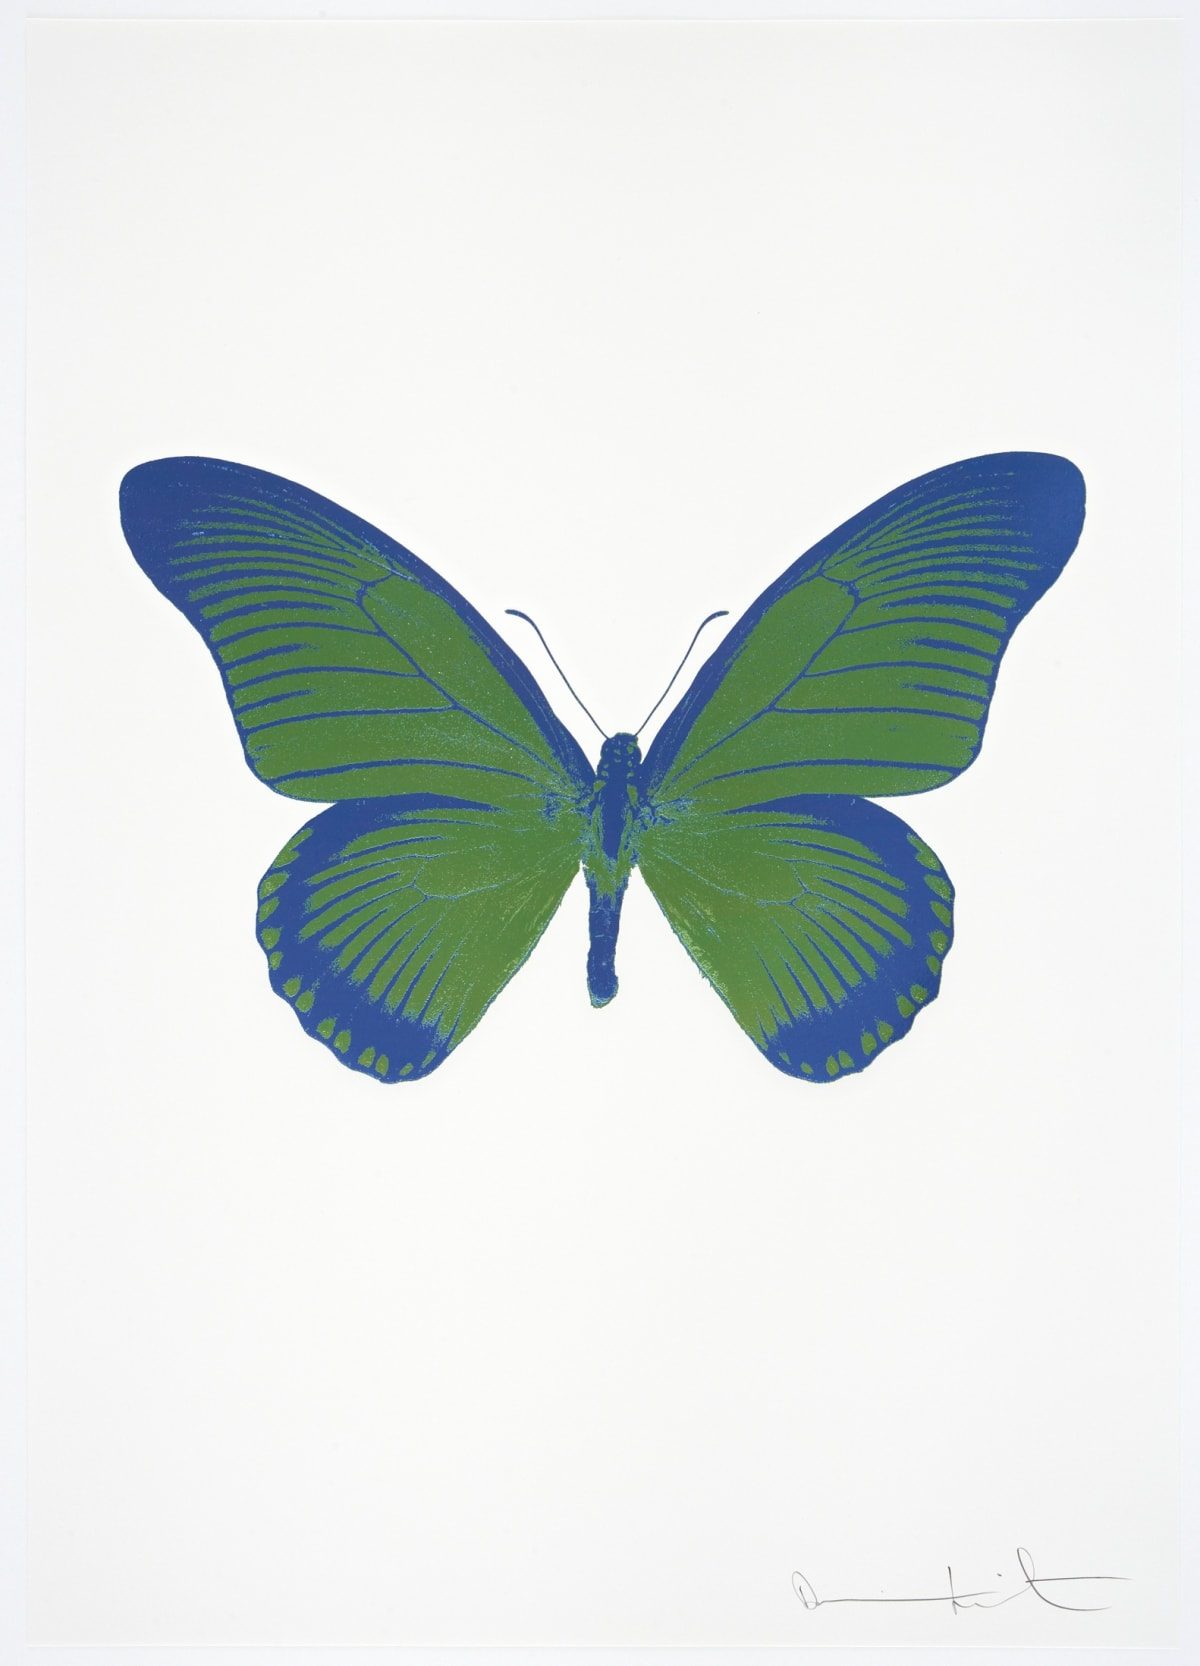 Damien Hirst The Souls IV - Leaf Green/Frost Blue/Frost Blue Damien Hirst butterfly foil print for sale Damien Hirst print for sale , 2010 2 colour foil block on 300gsm Arches 88 archival paper. Signed and numbered. Published by Paul Stolper and Other Criteria 72 x 51cm OC8042 / 1418-65 Edition of 15